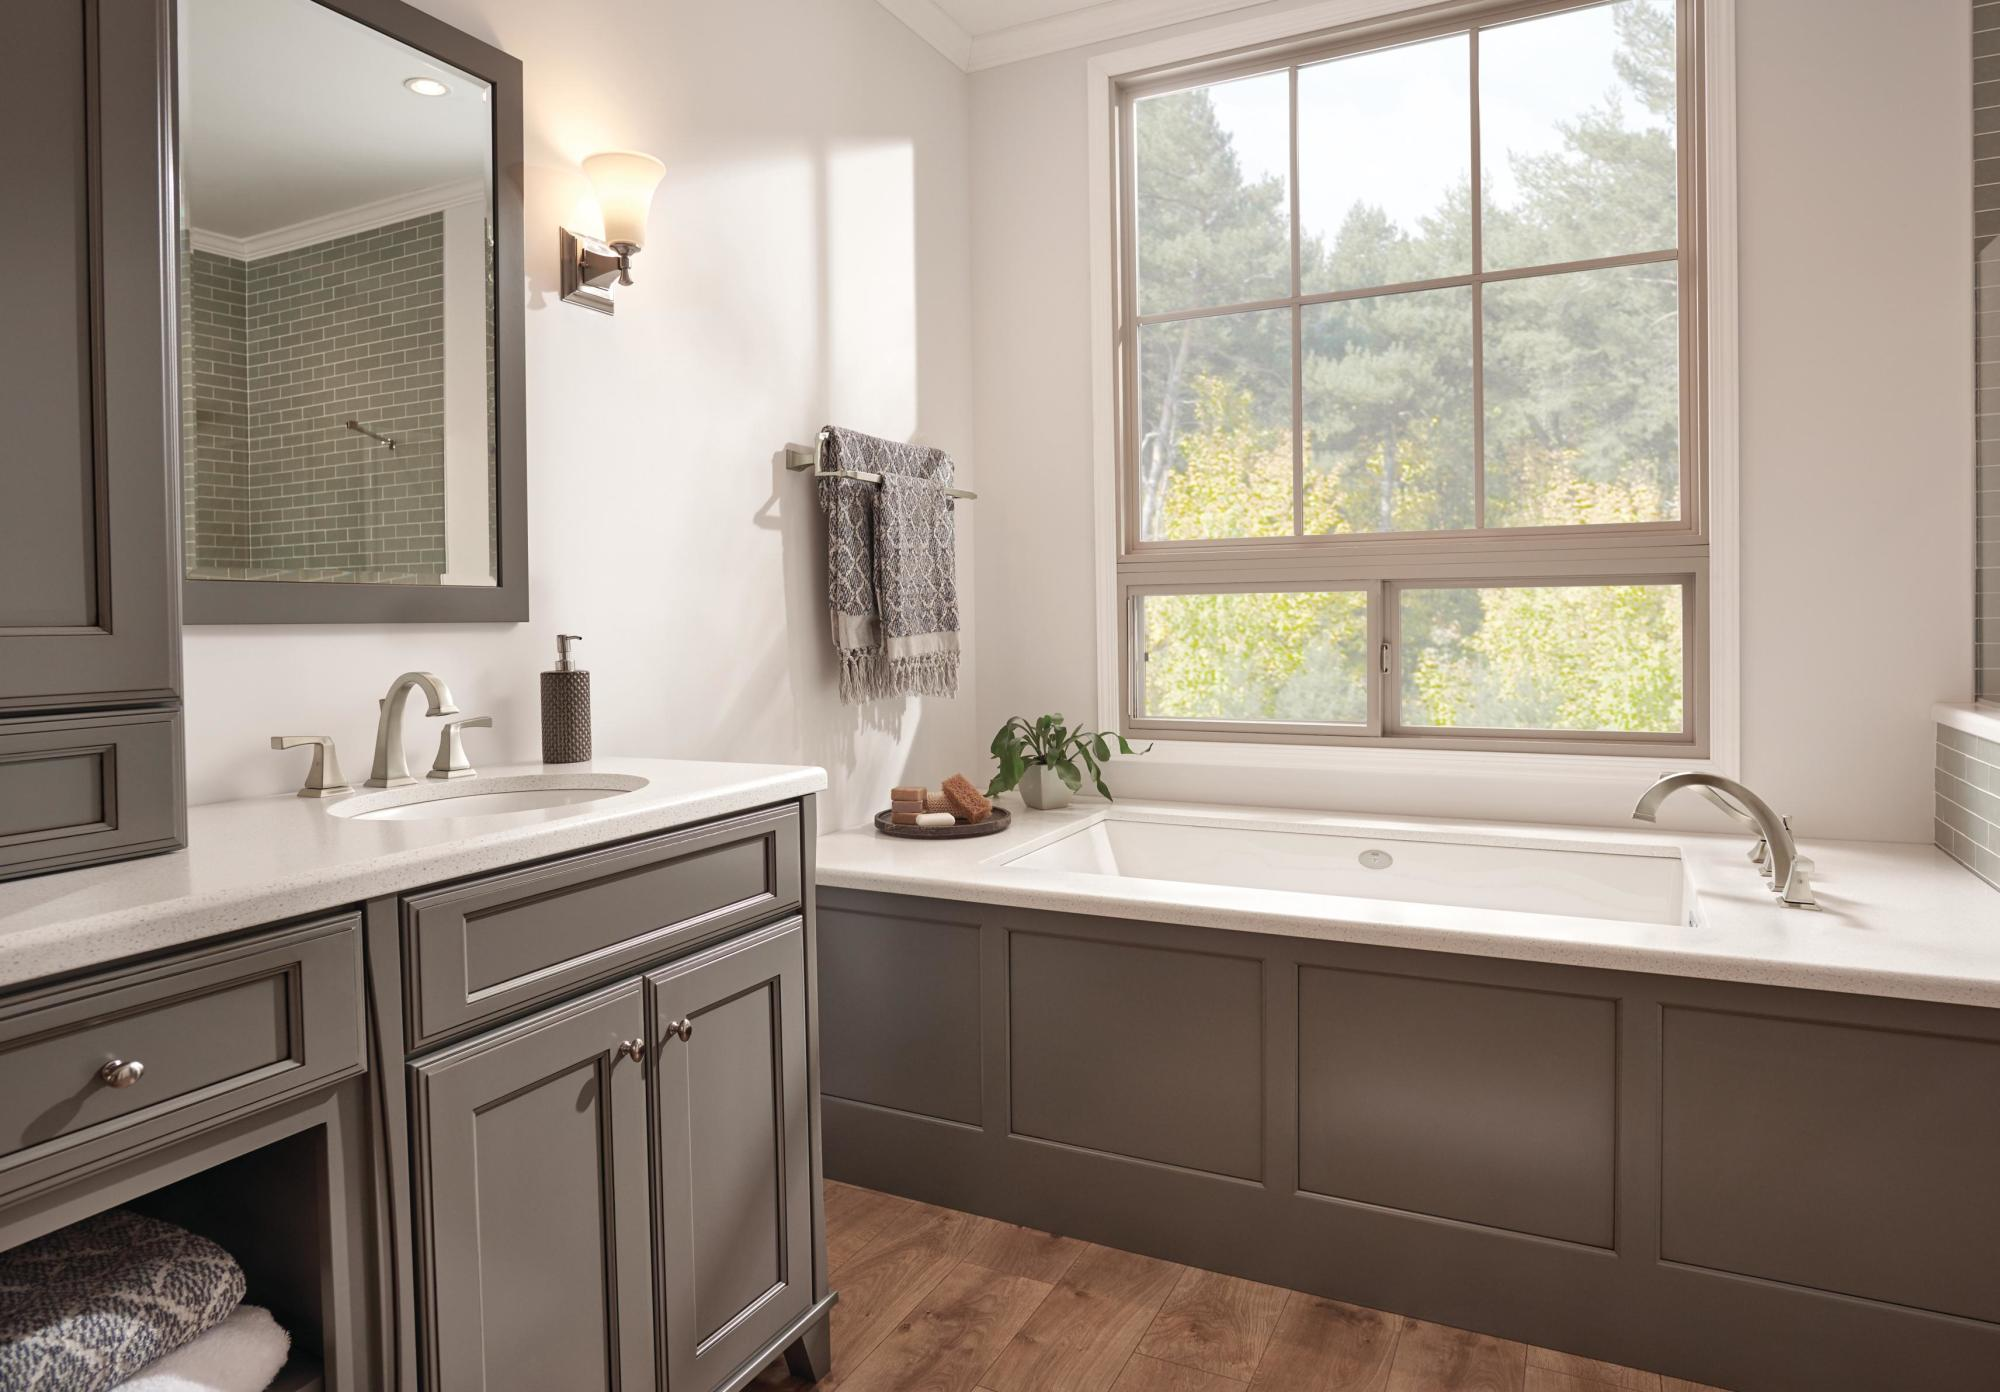 7 Faucet Finishes For Fabulous Bathrooms: Delta 3551LF Dryden Widespread Bathroom Faucet With Metal